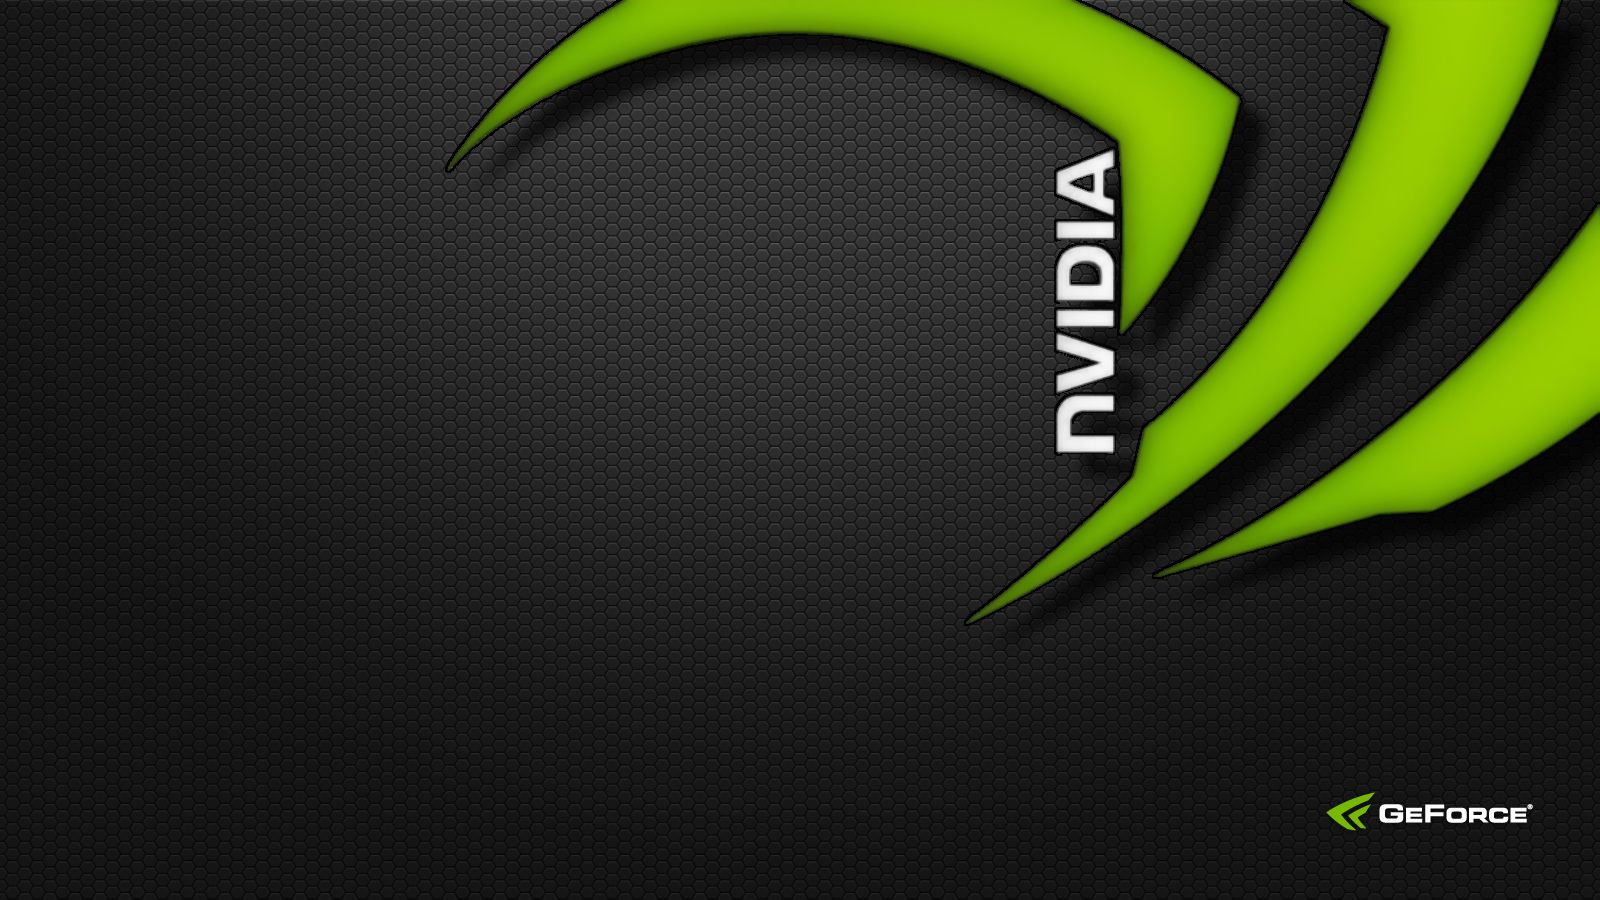 1920x1080 Nvidia Wallpapers 4K 72 Images